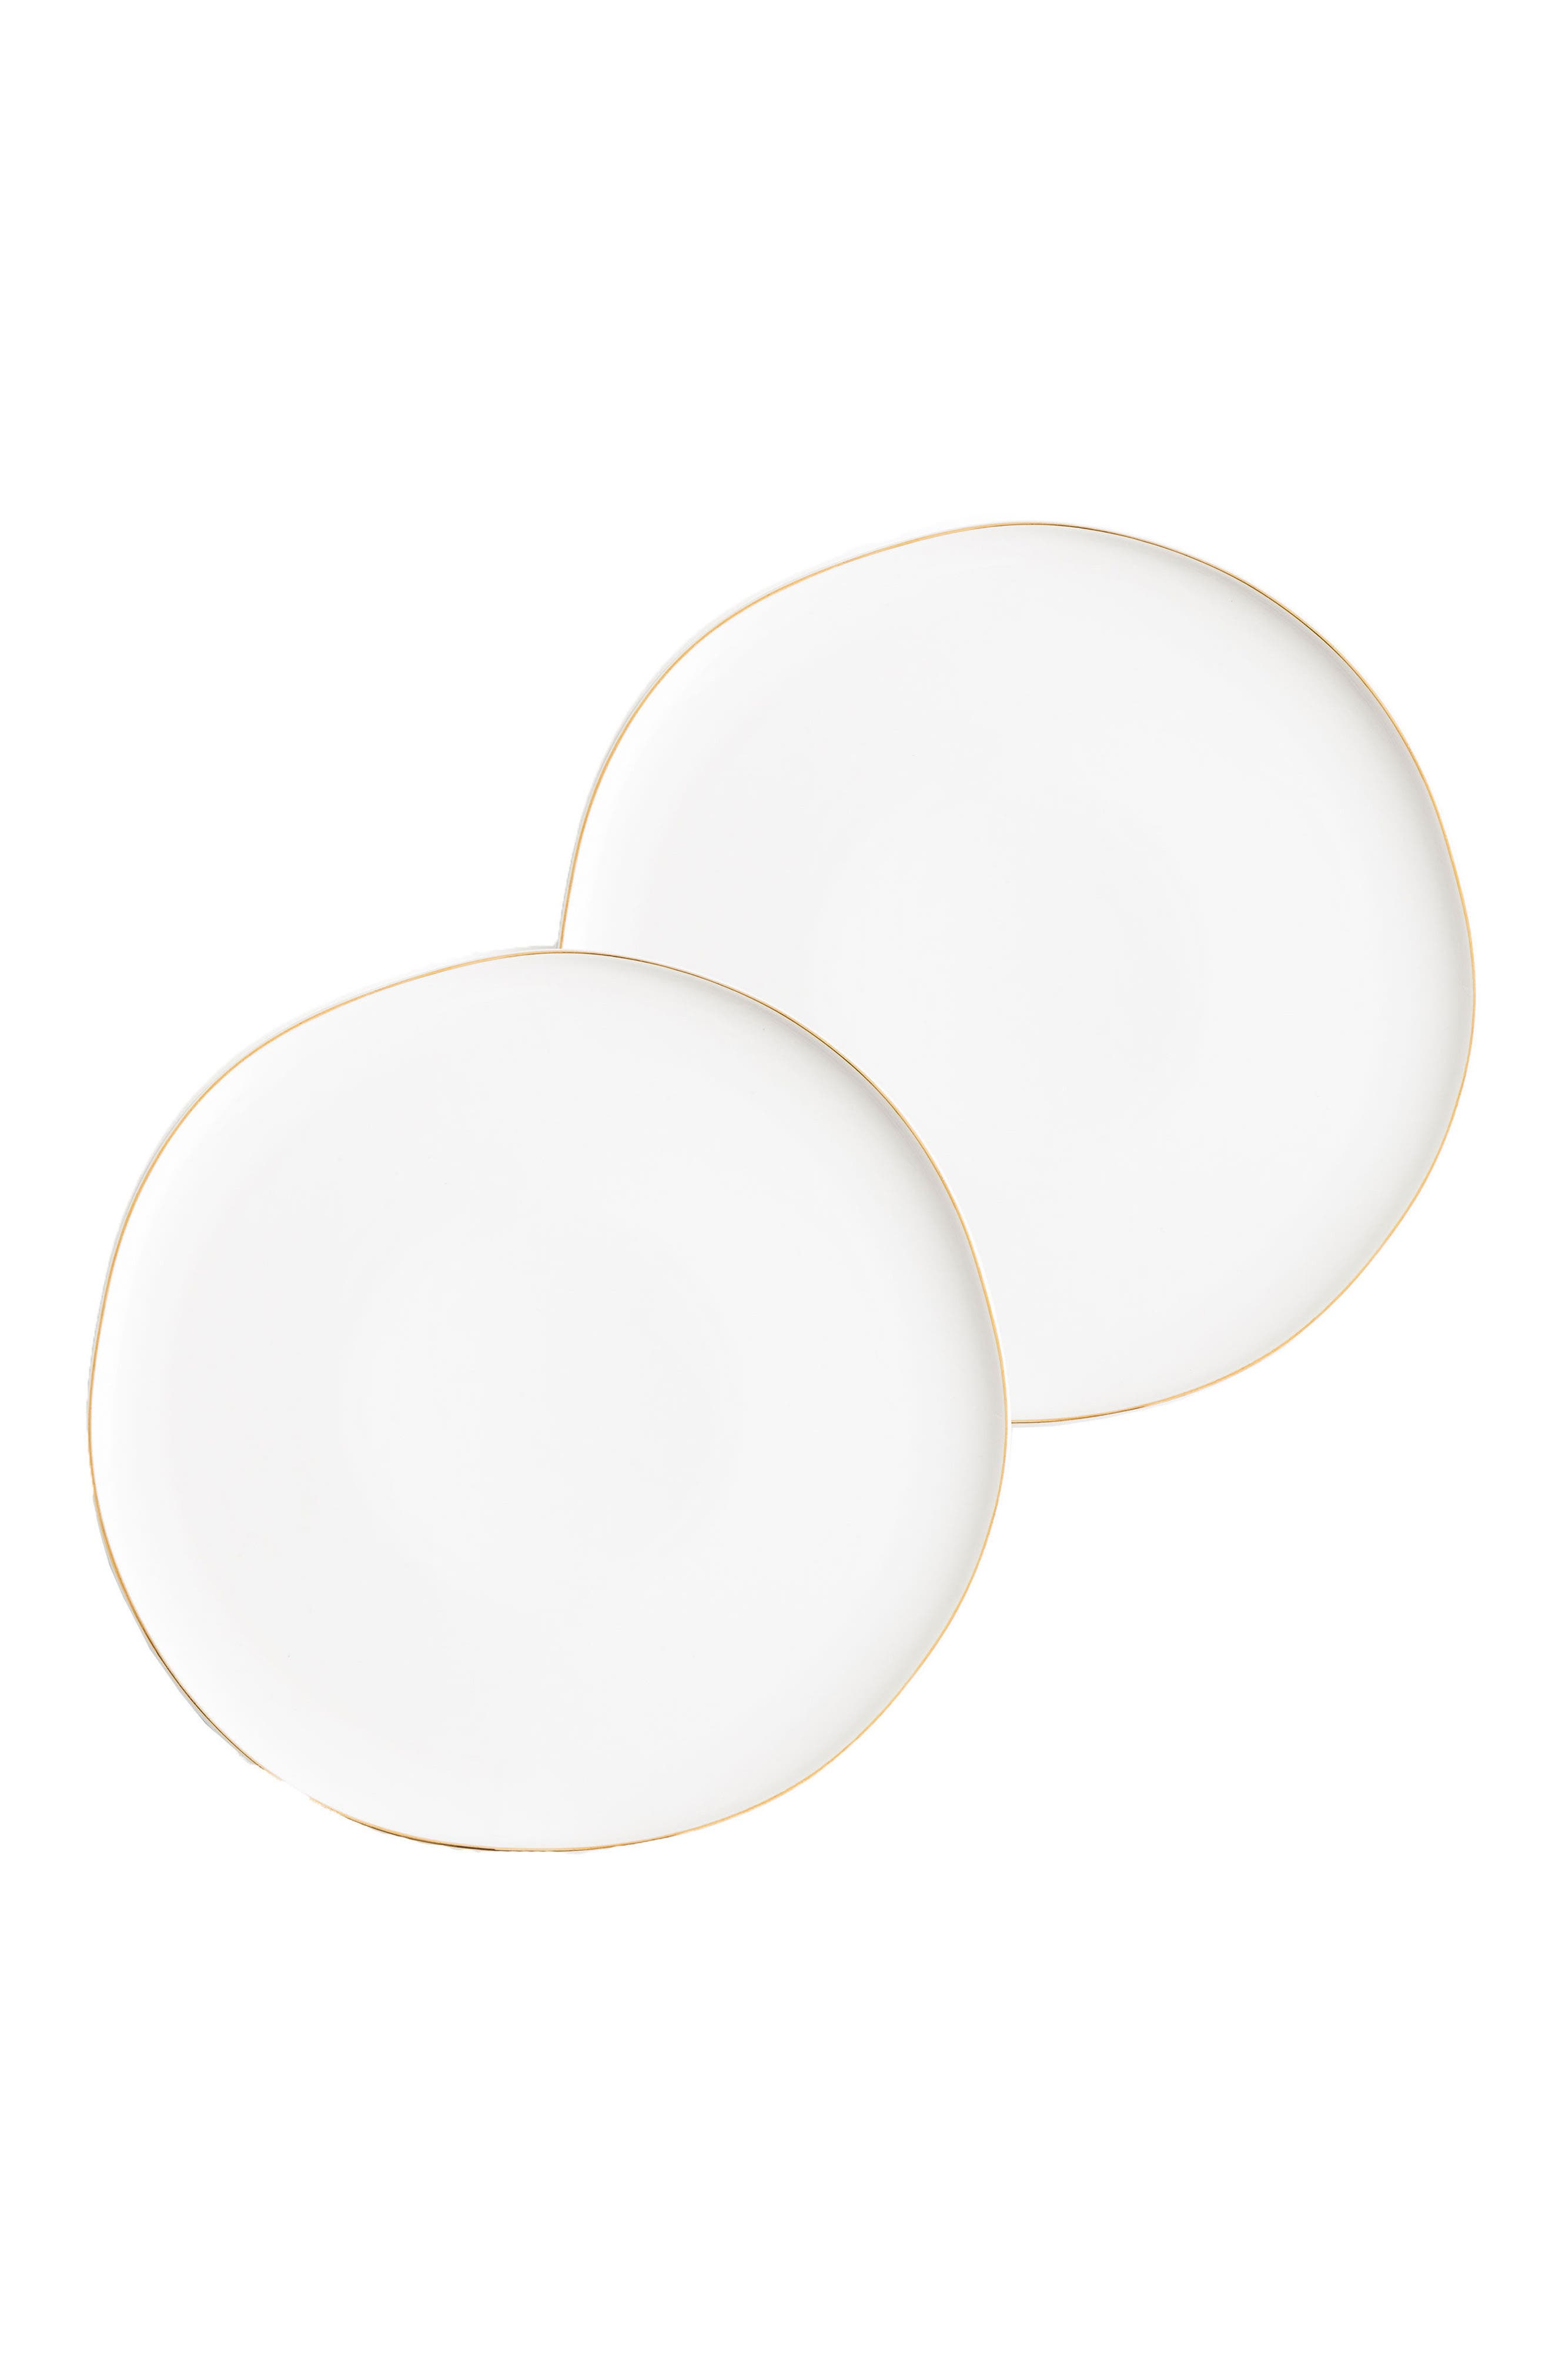 Pacifica Set of 2 Plates,                             Main thumbnail 1, color,                             White